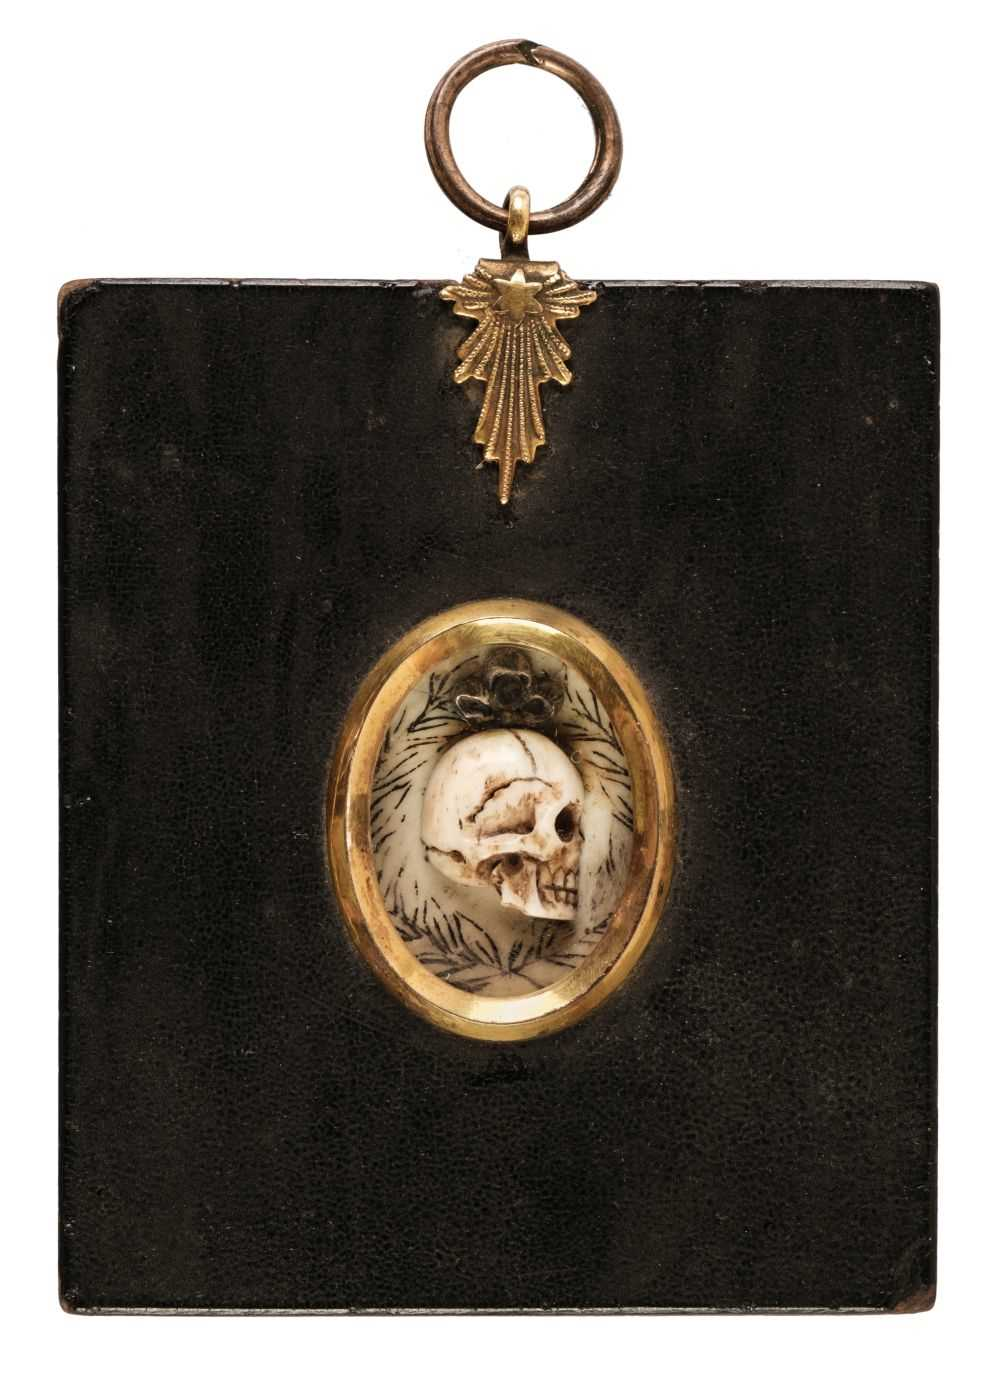 Lot 321 - Memento Mori. An oval miniature carved skull in profile, late 18th century